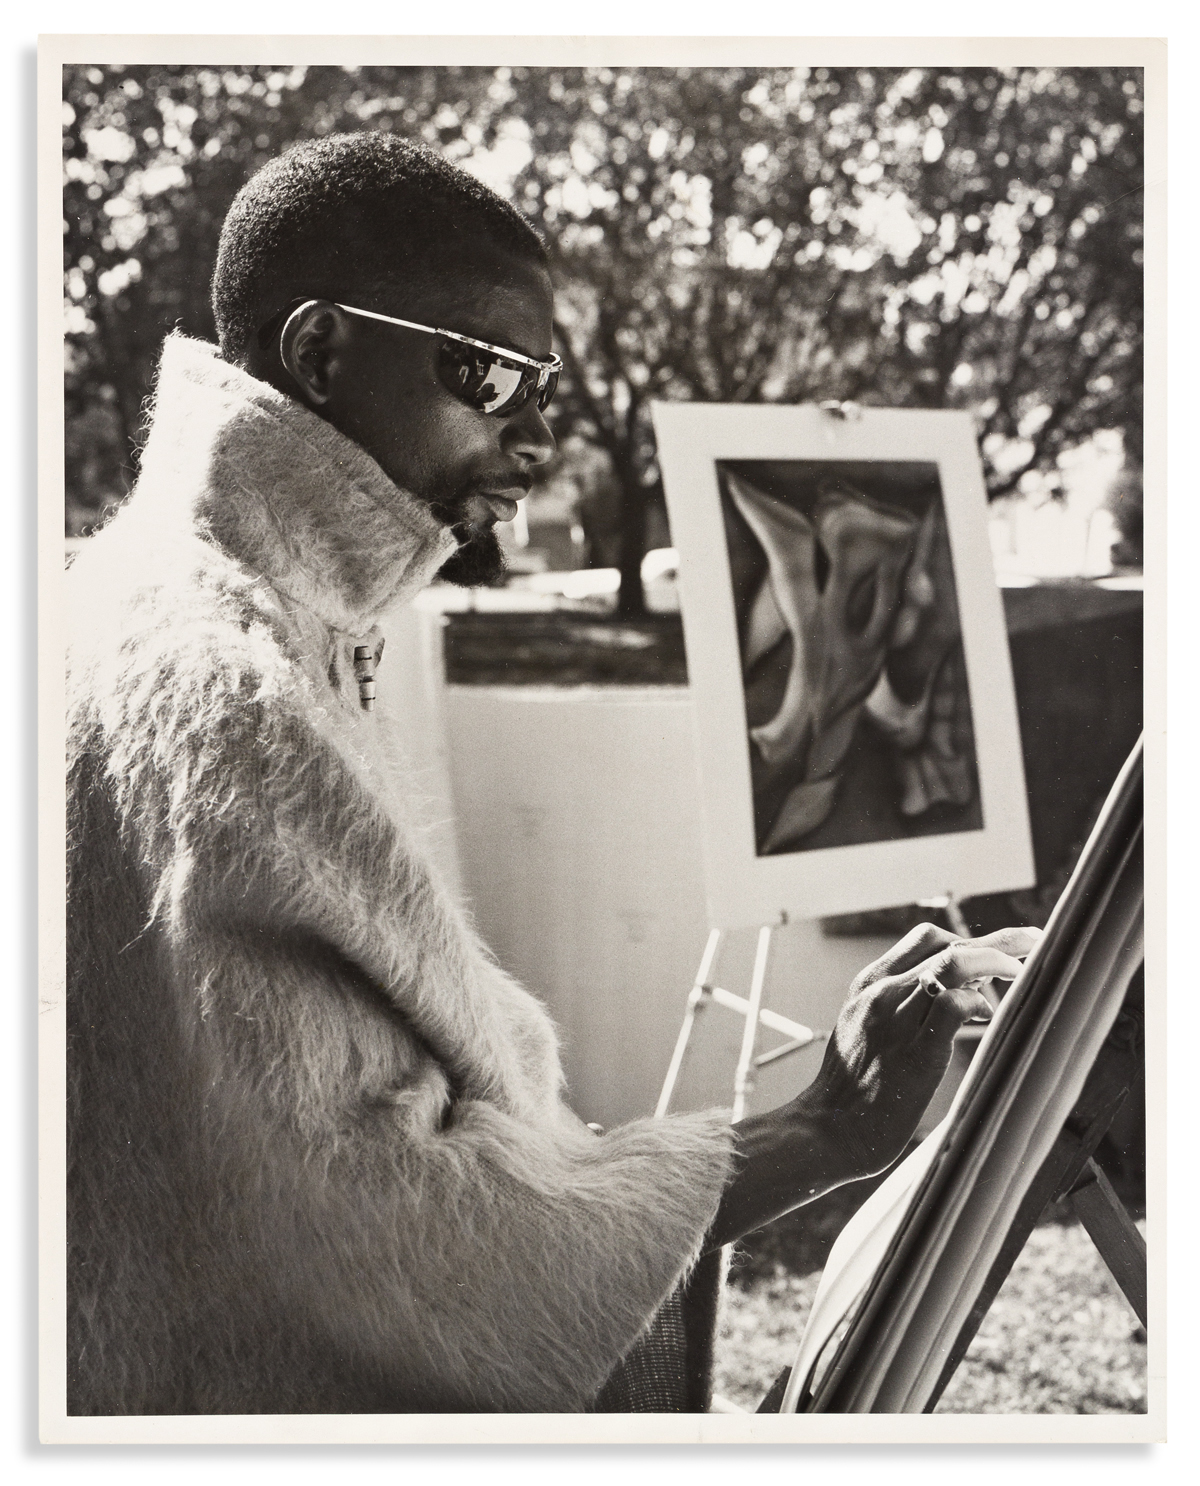 (ART.) Folder of publicity materials on Black artists compiled by a California art critic.